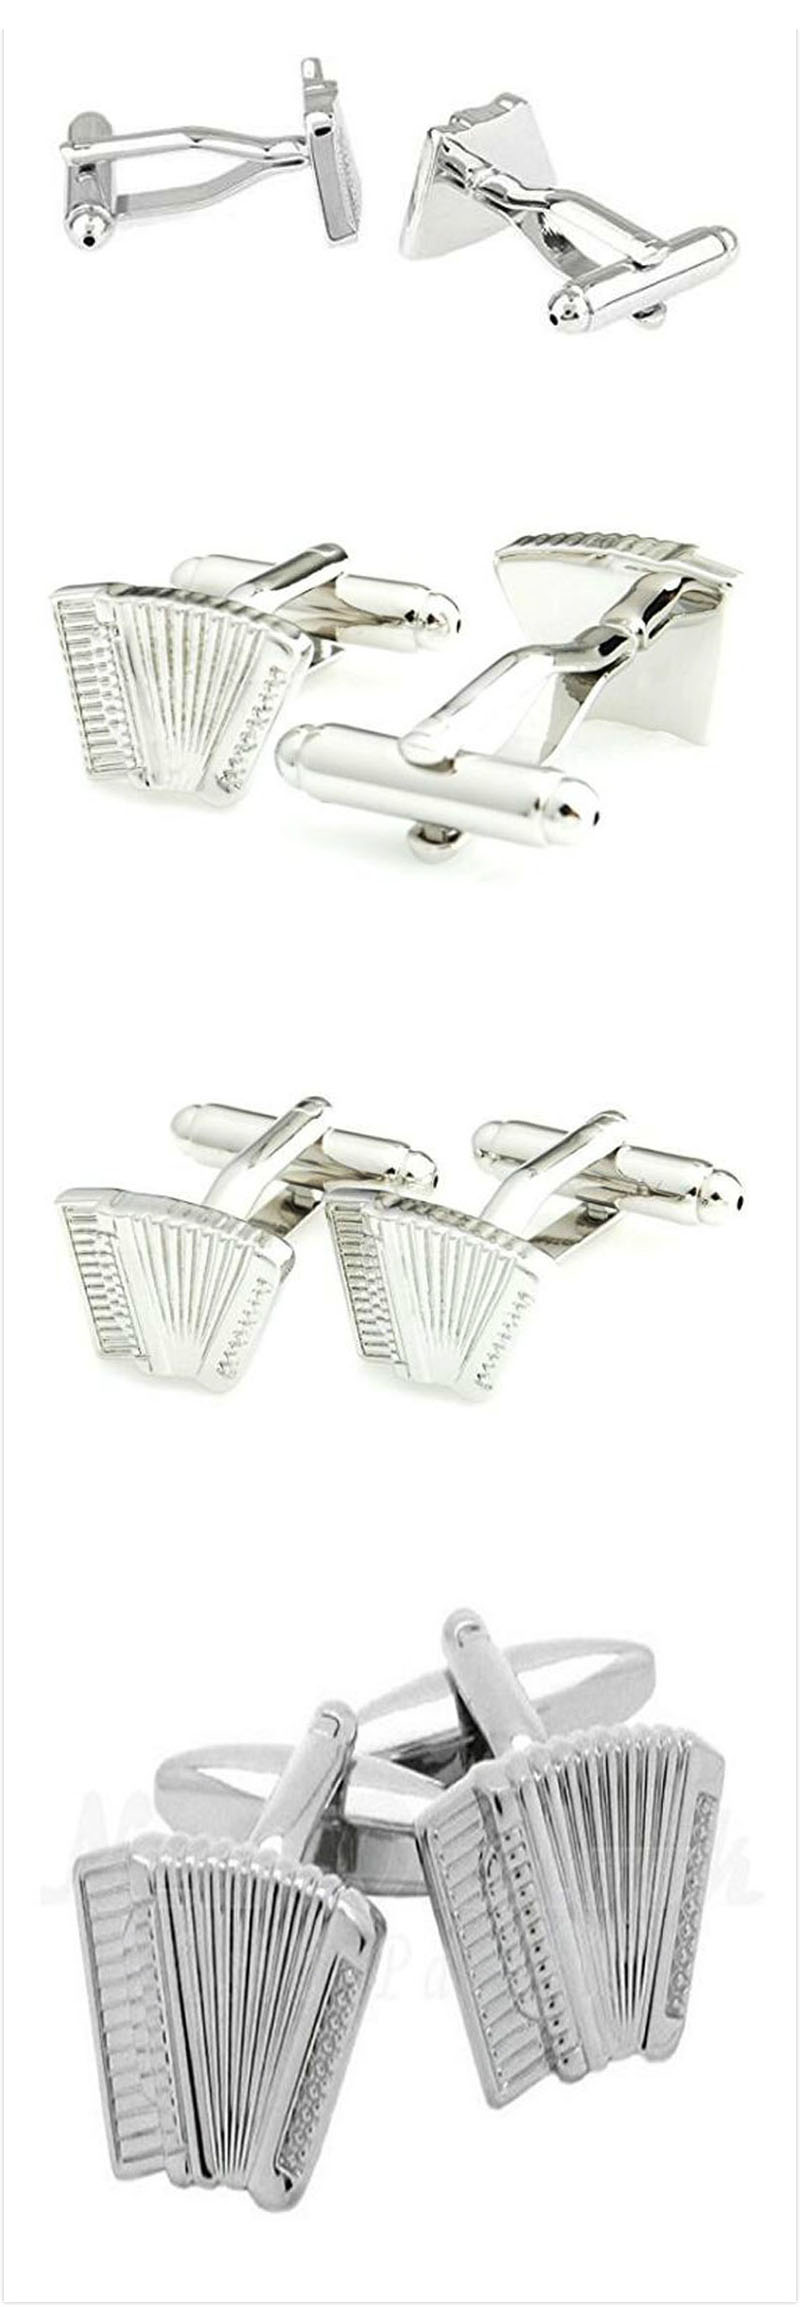 Smart Men's Novelty Accordion Cufflink